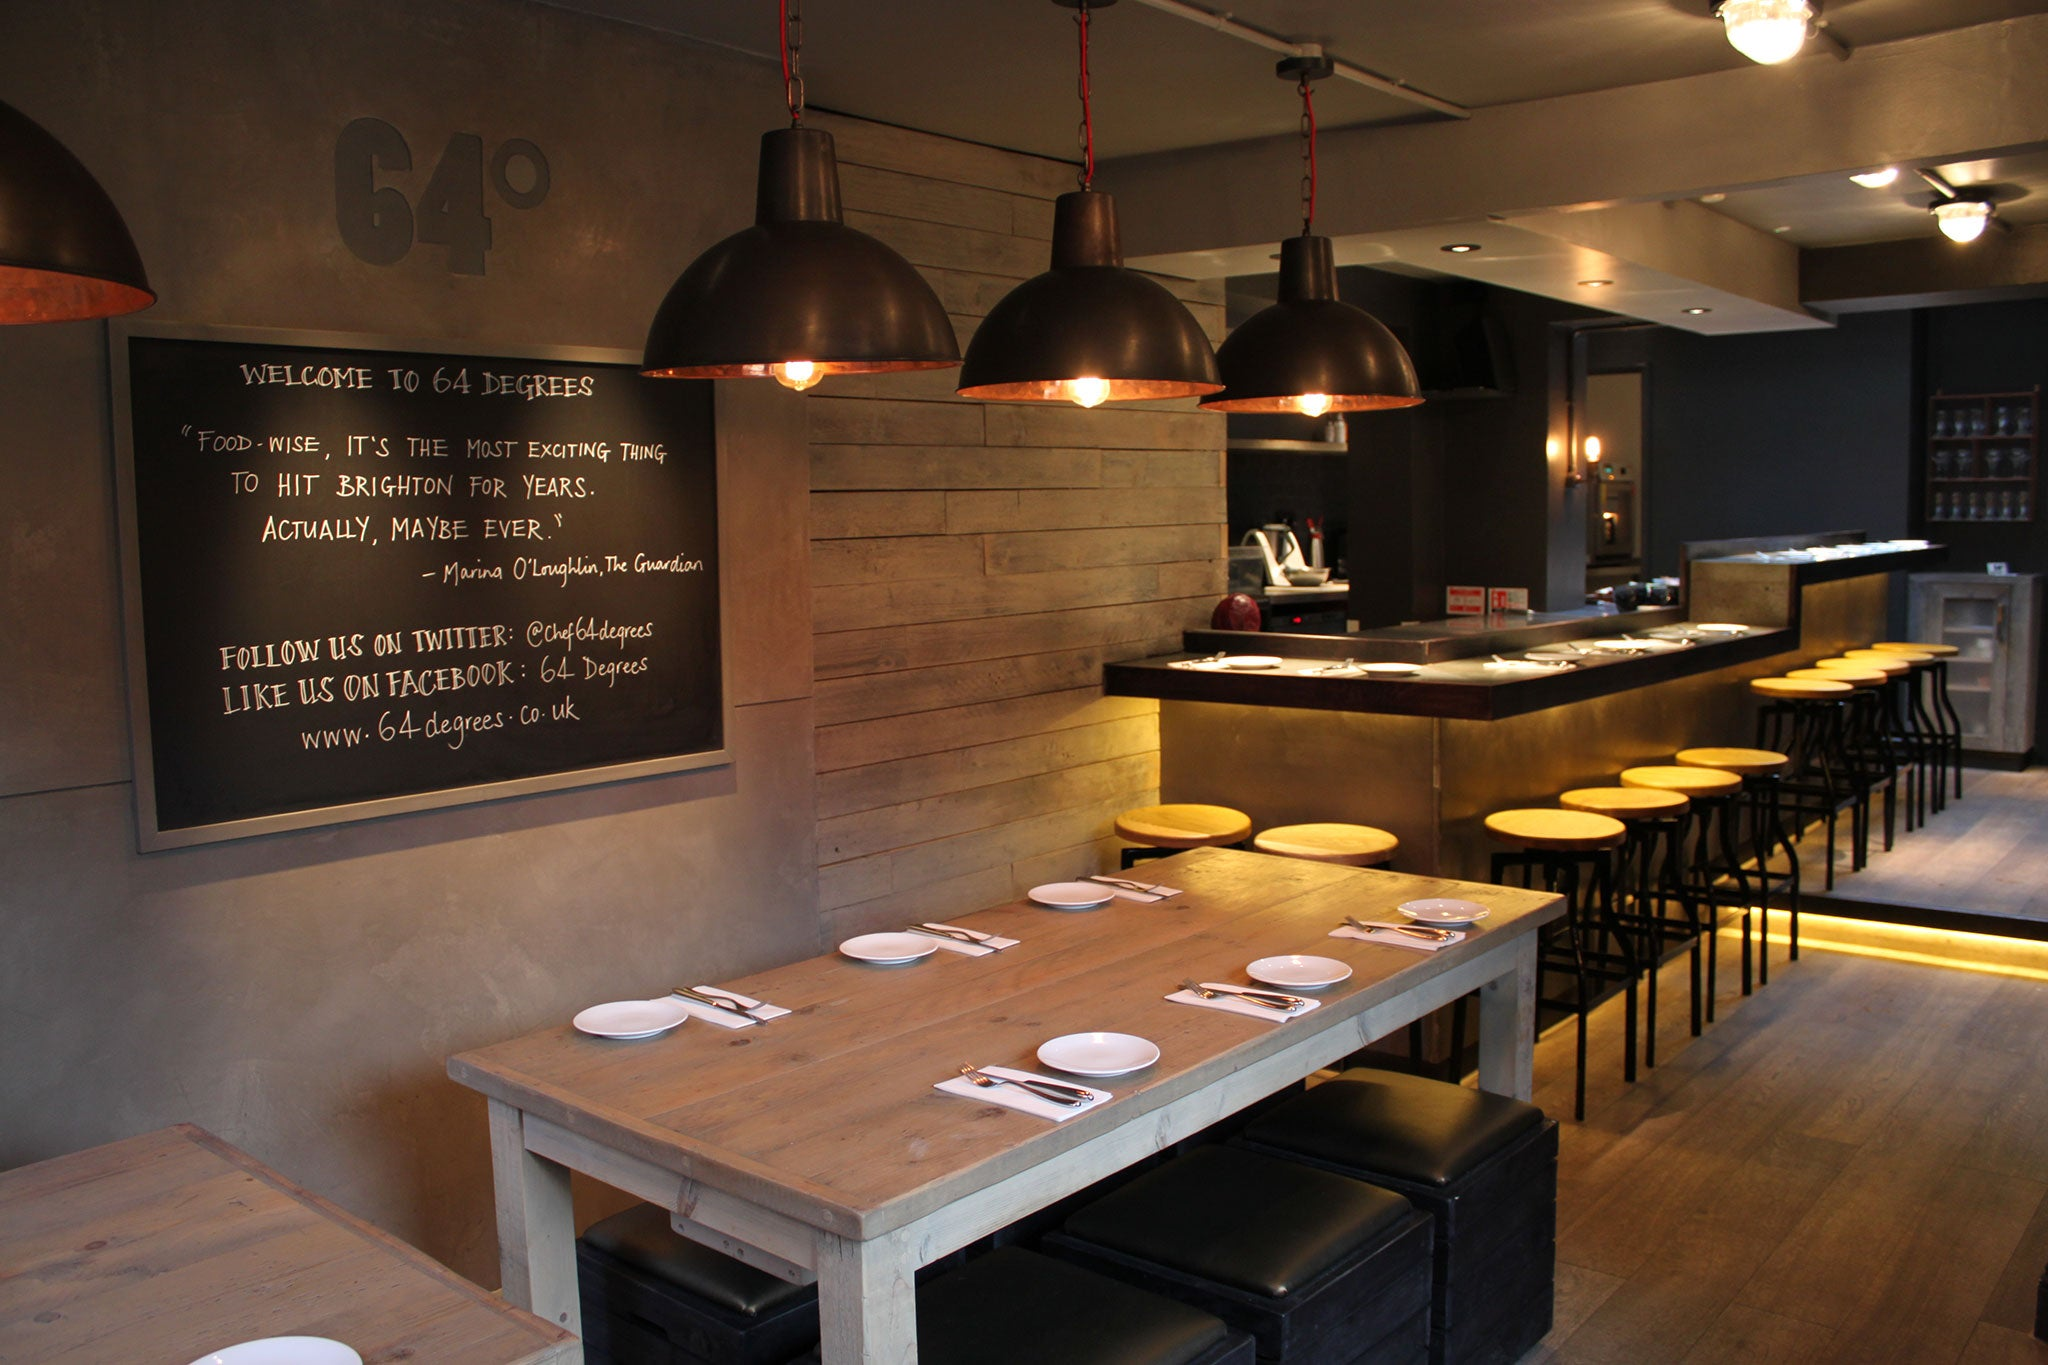 64 Degrees Restaurant Review Small Plates Big Ideas At Michael Bremners Brighton Venture